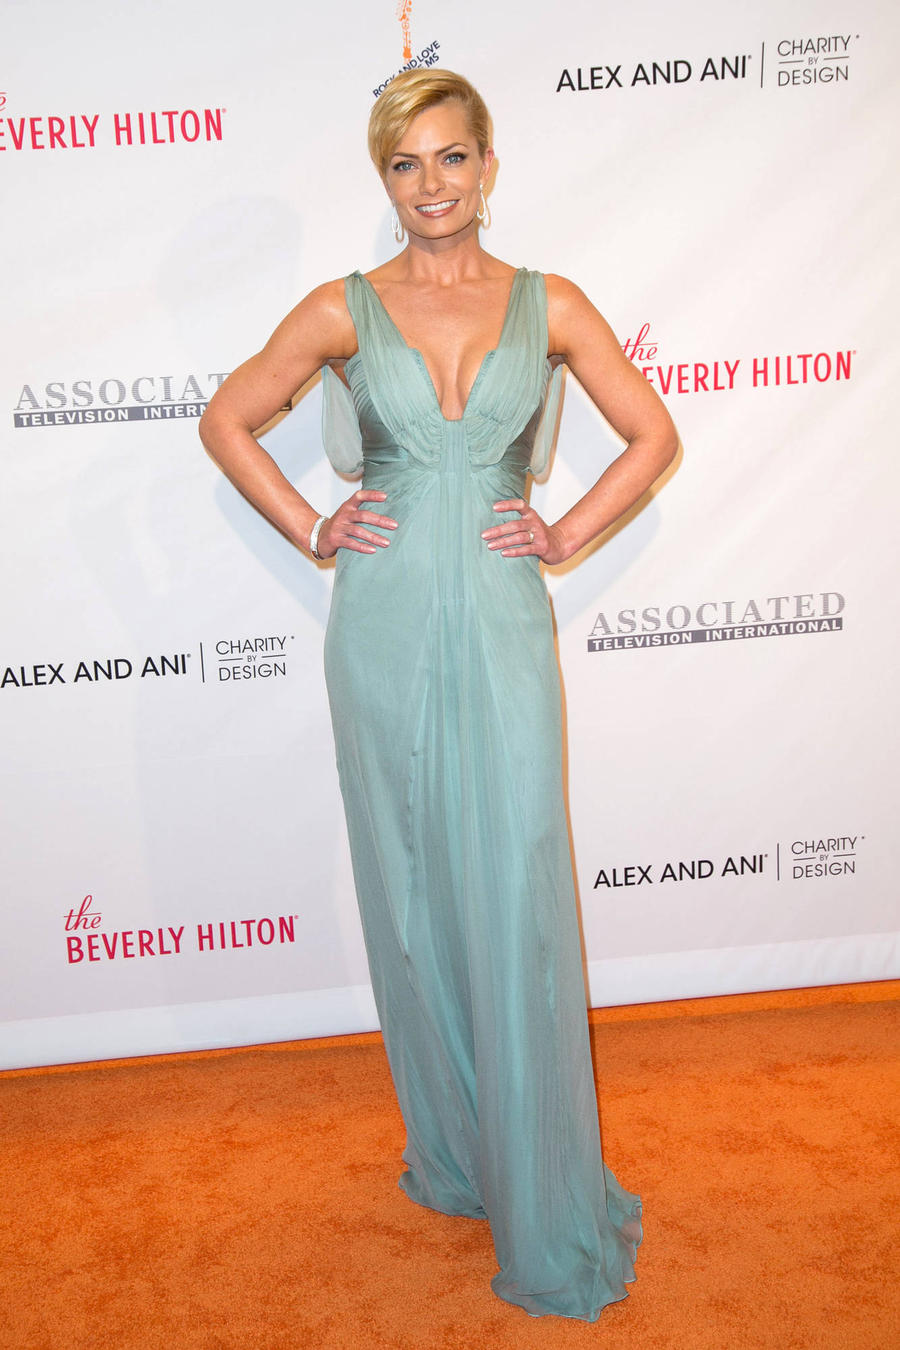 Jaime Pressly's Home Burgled - Report